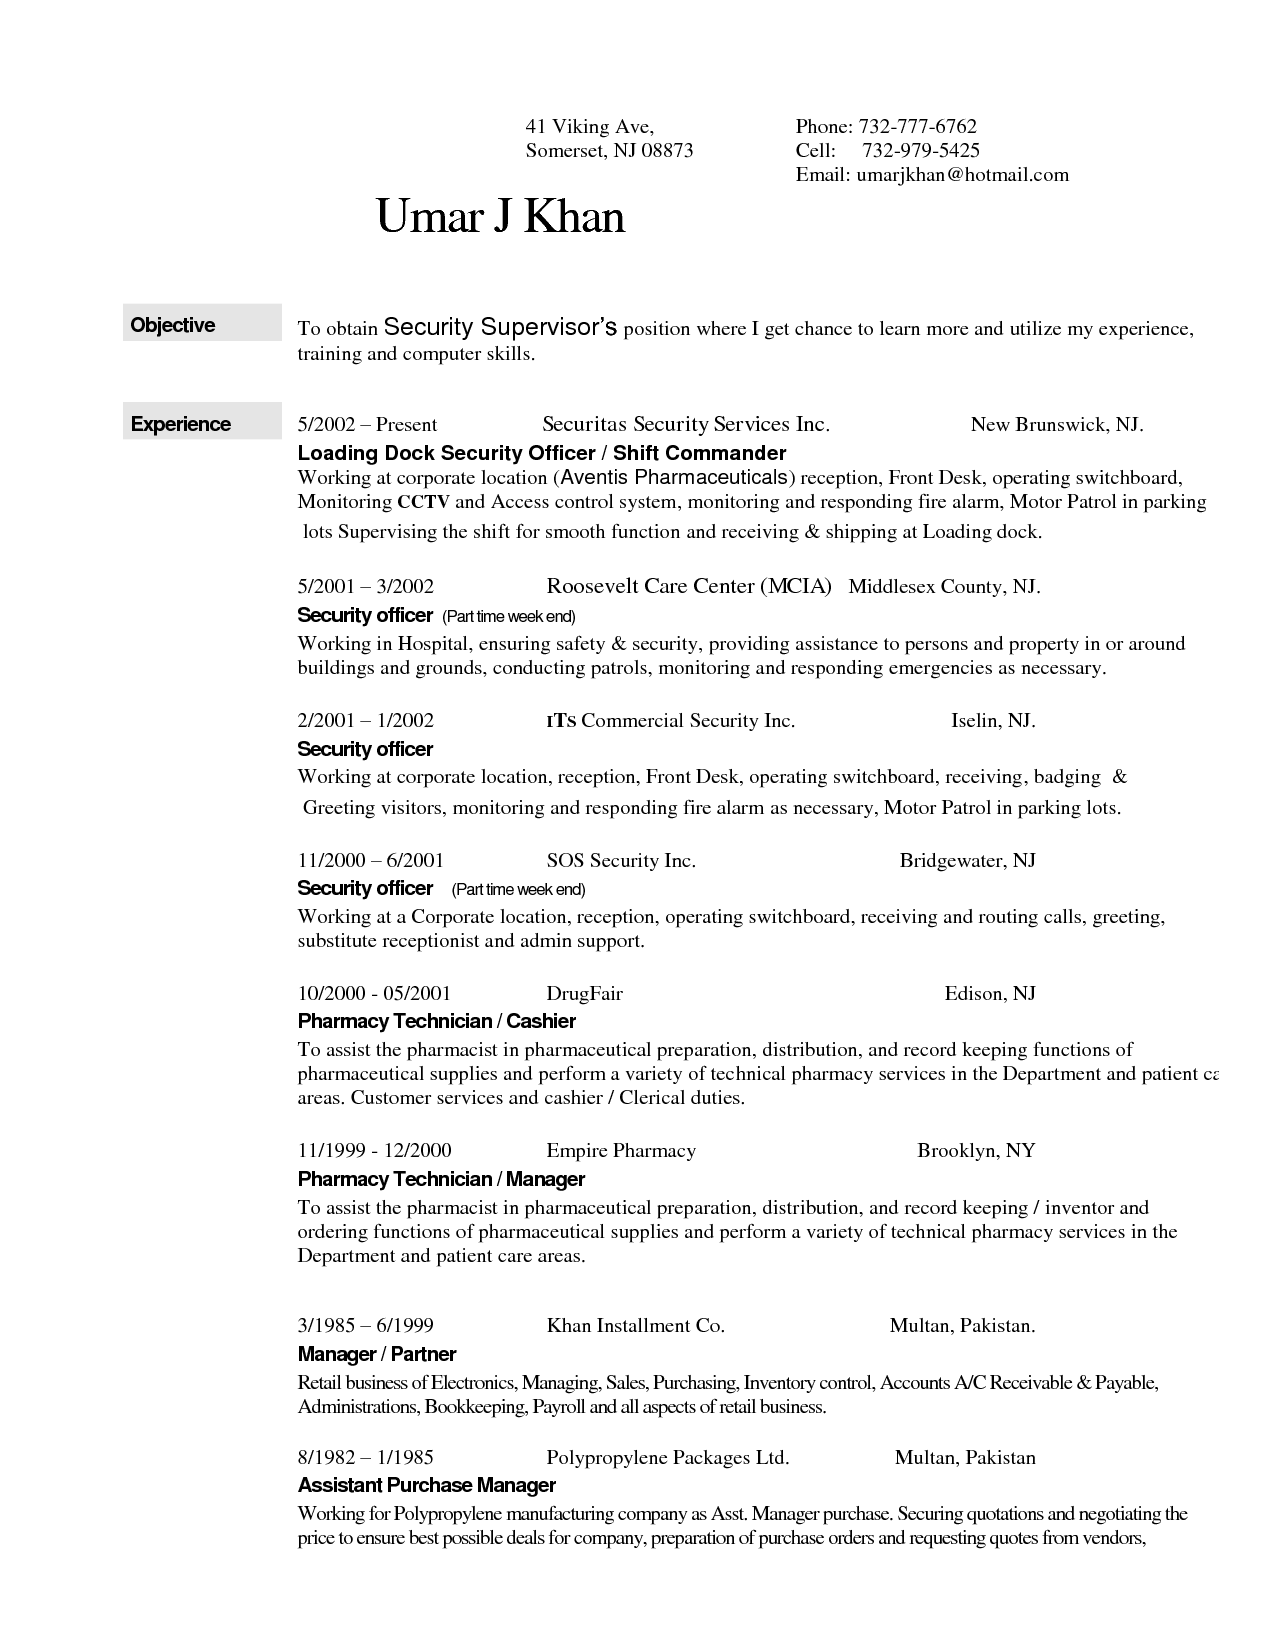 Entry Level Security Guard Resume Examples jobresume – Security Guard Resume Example